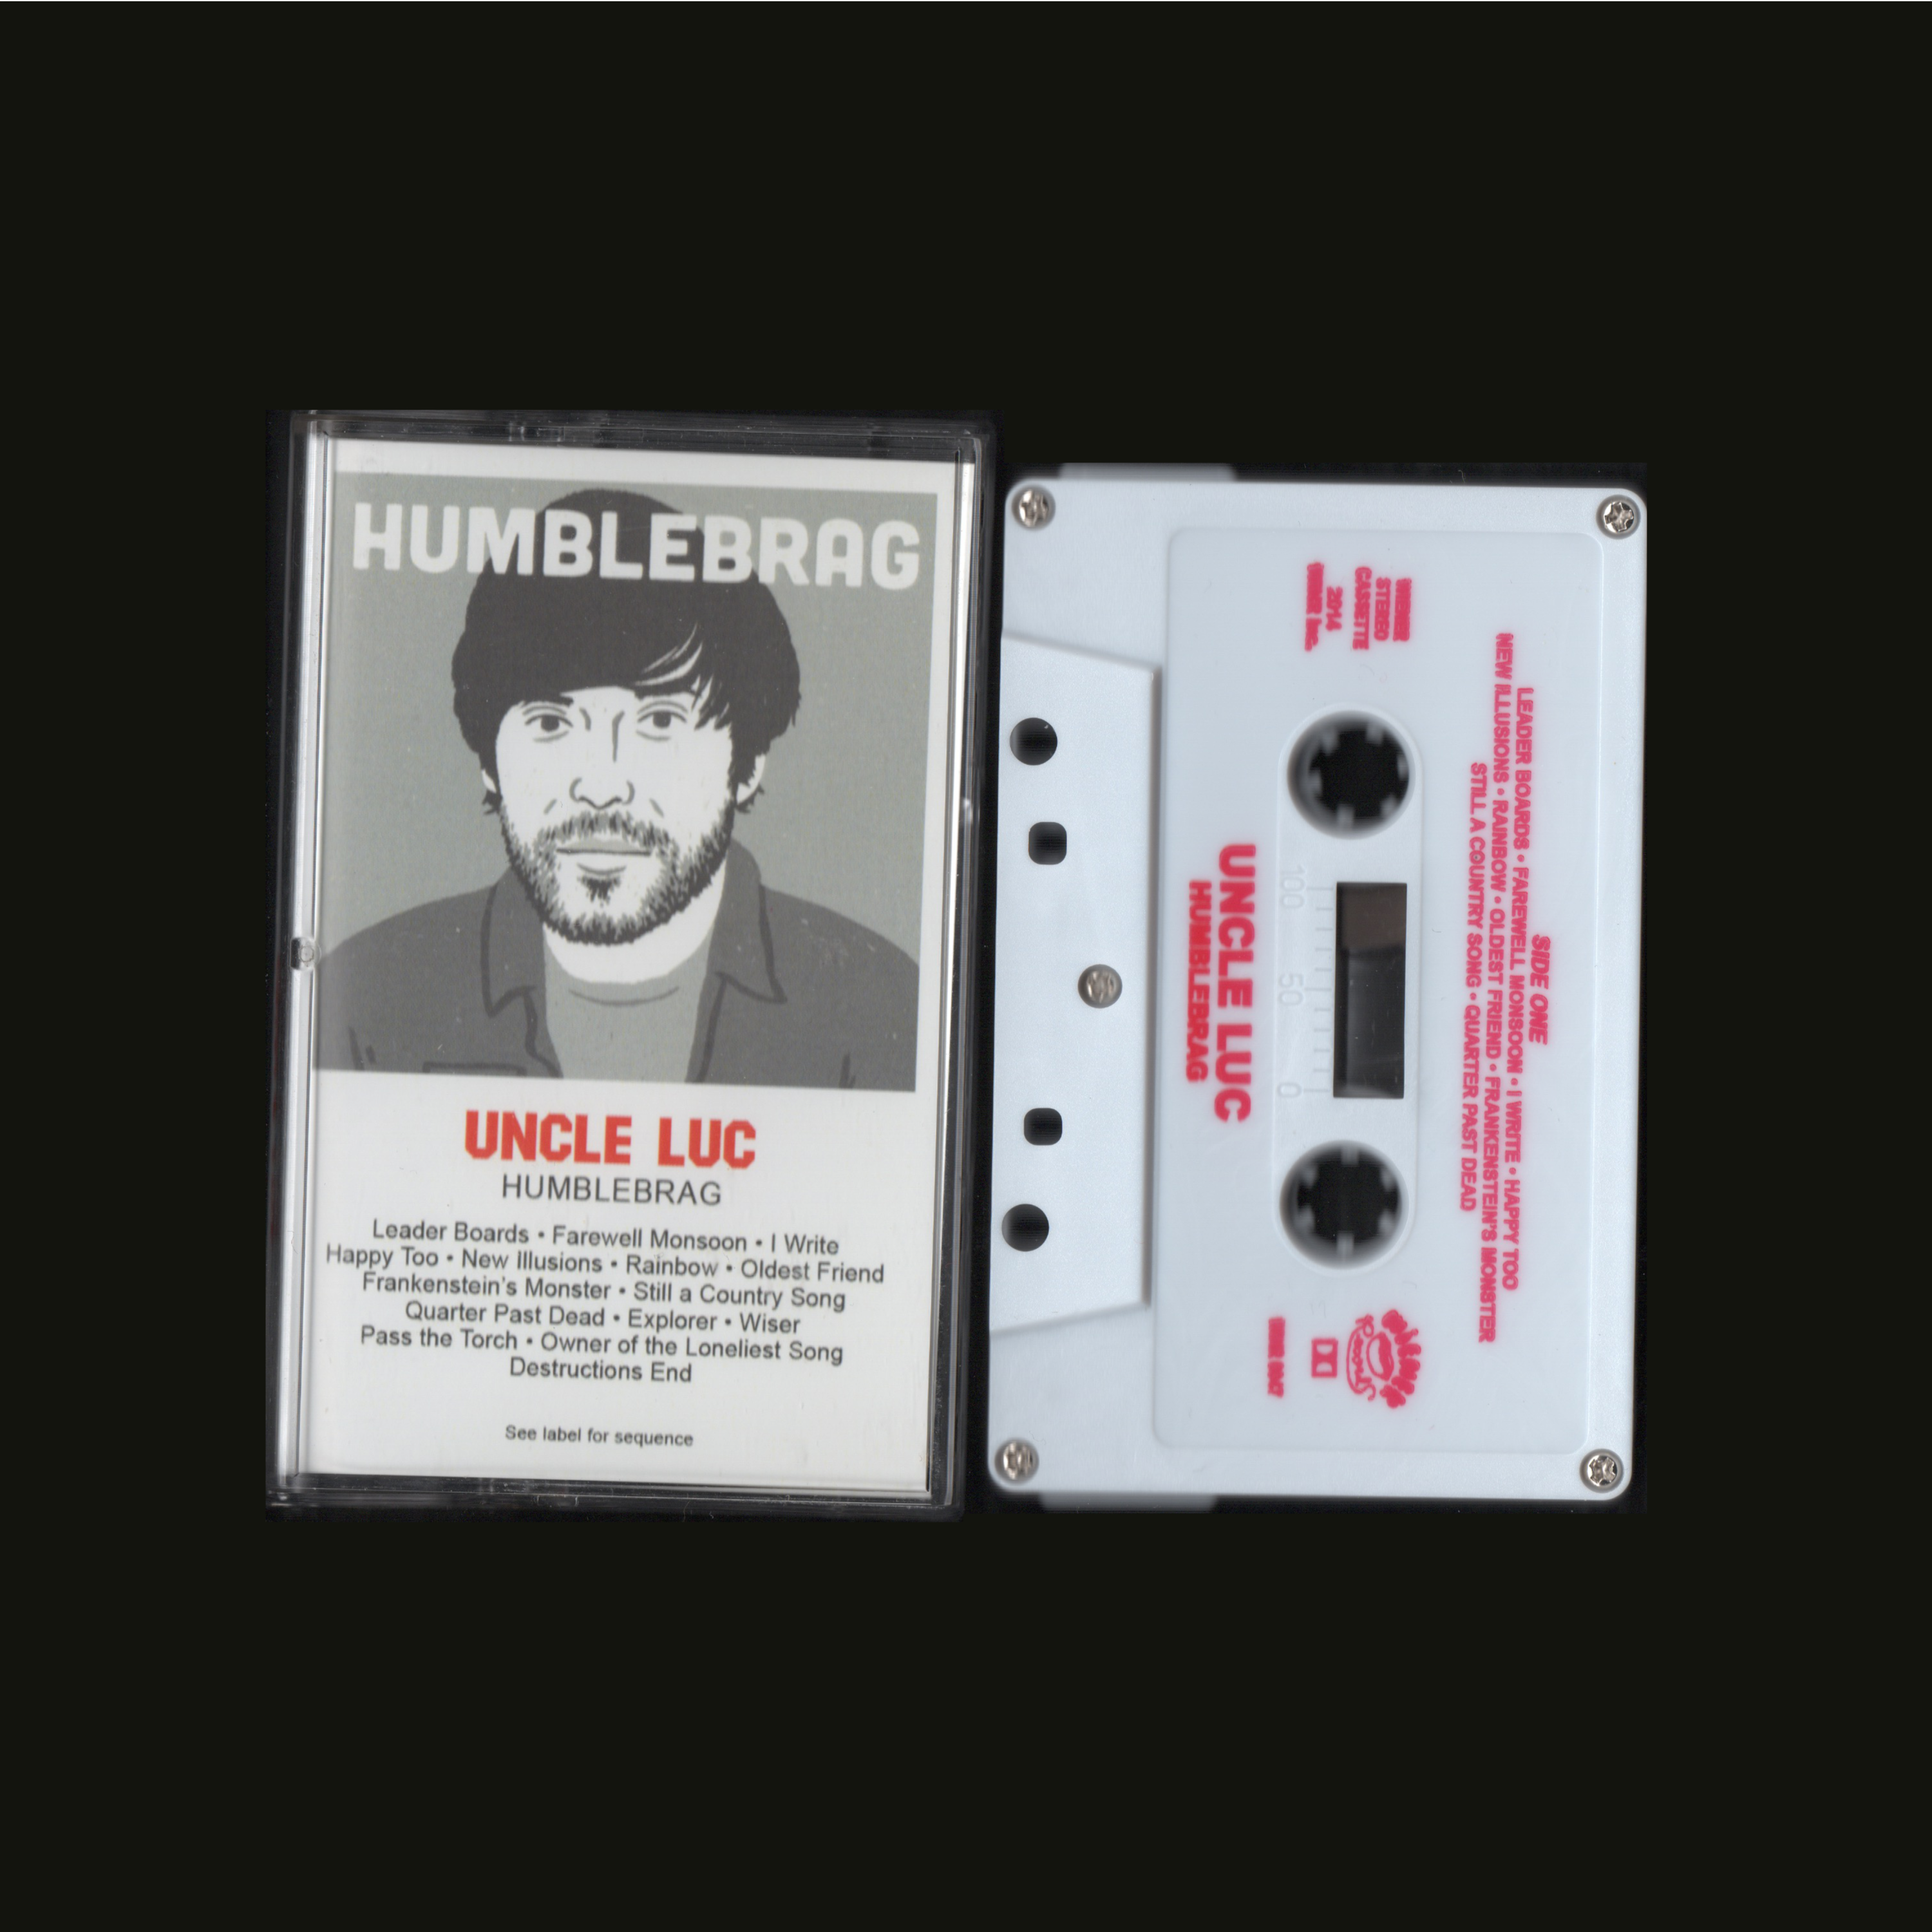 Uncle Luc - Humblebrag (Wiener Records)